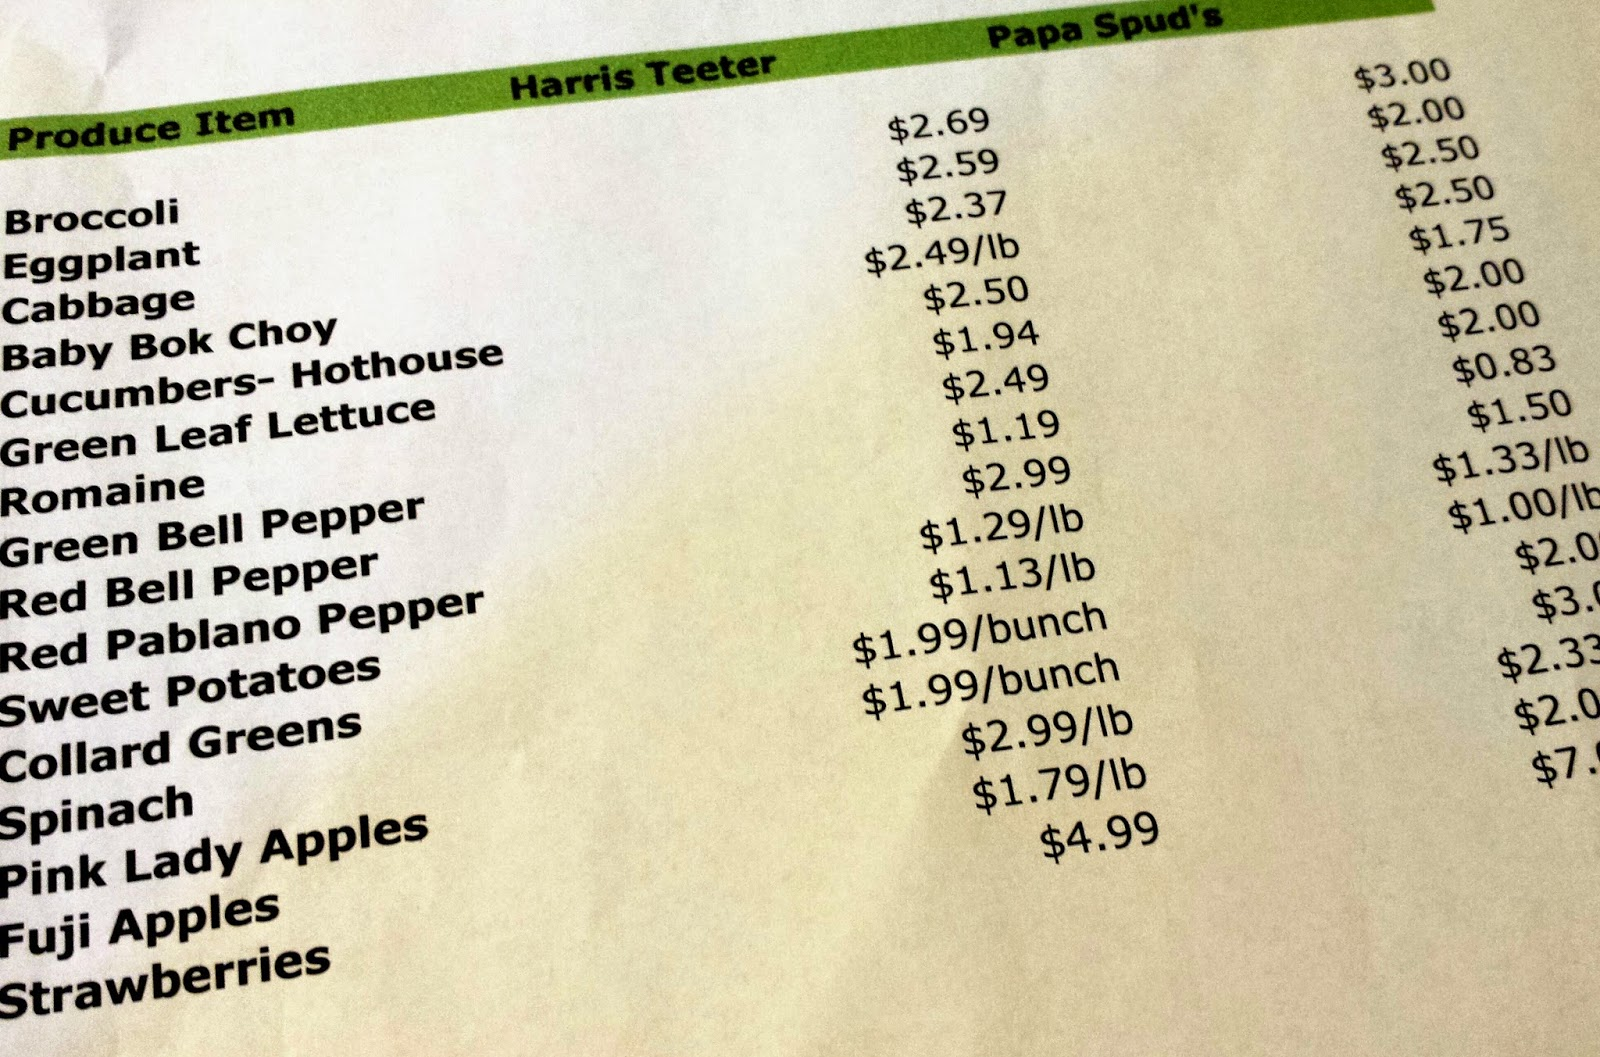 Papa Spud's price list; comparable to grocery stores. Some cases cheaper.